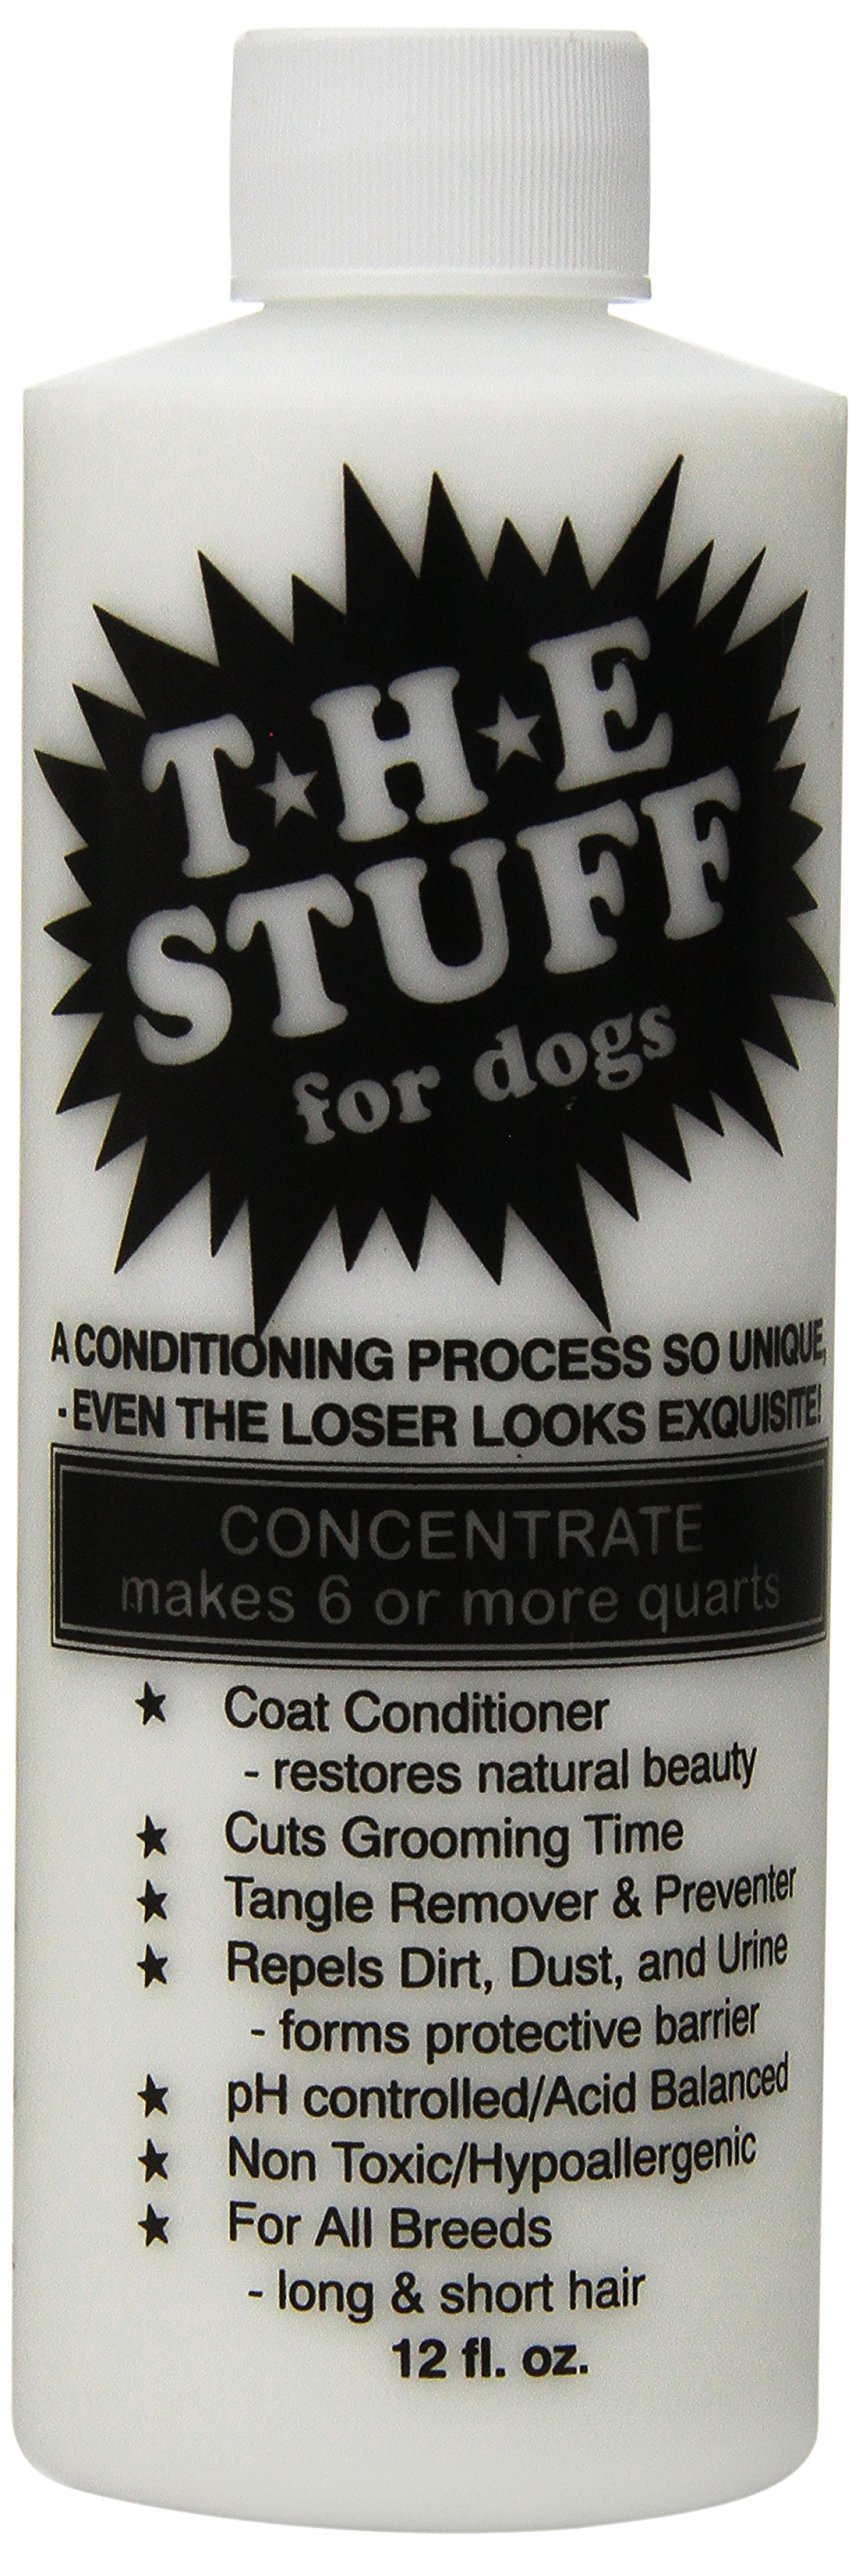 The Stuff Dog 15 to 1 Concentrate Conditioner Bottle, 12 oz